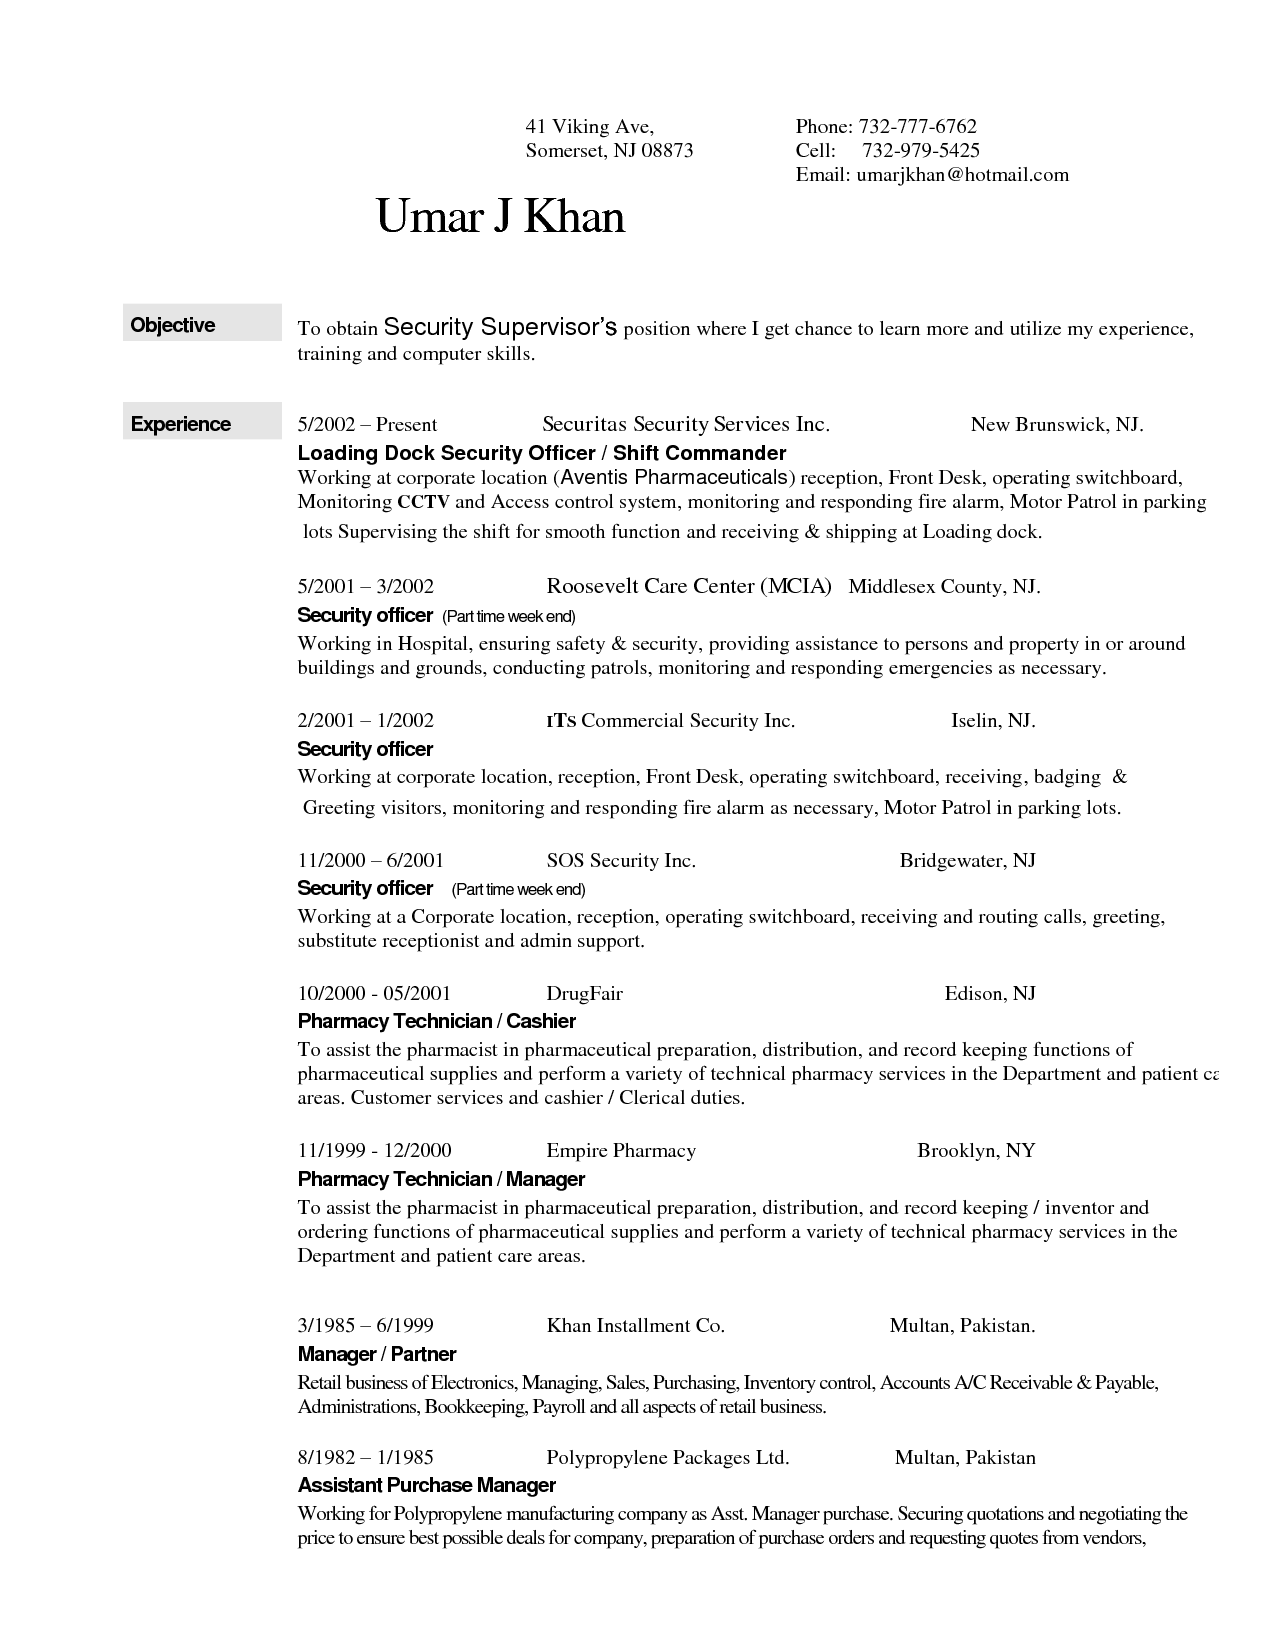 Entry Level Security Guard Resume Examples Httpwwwjobresume - Resume for security guard